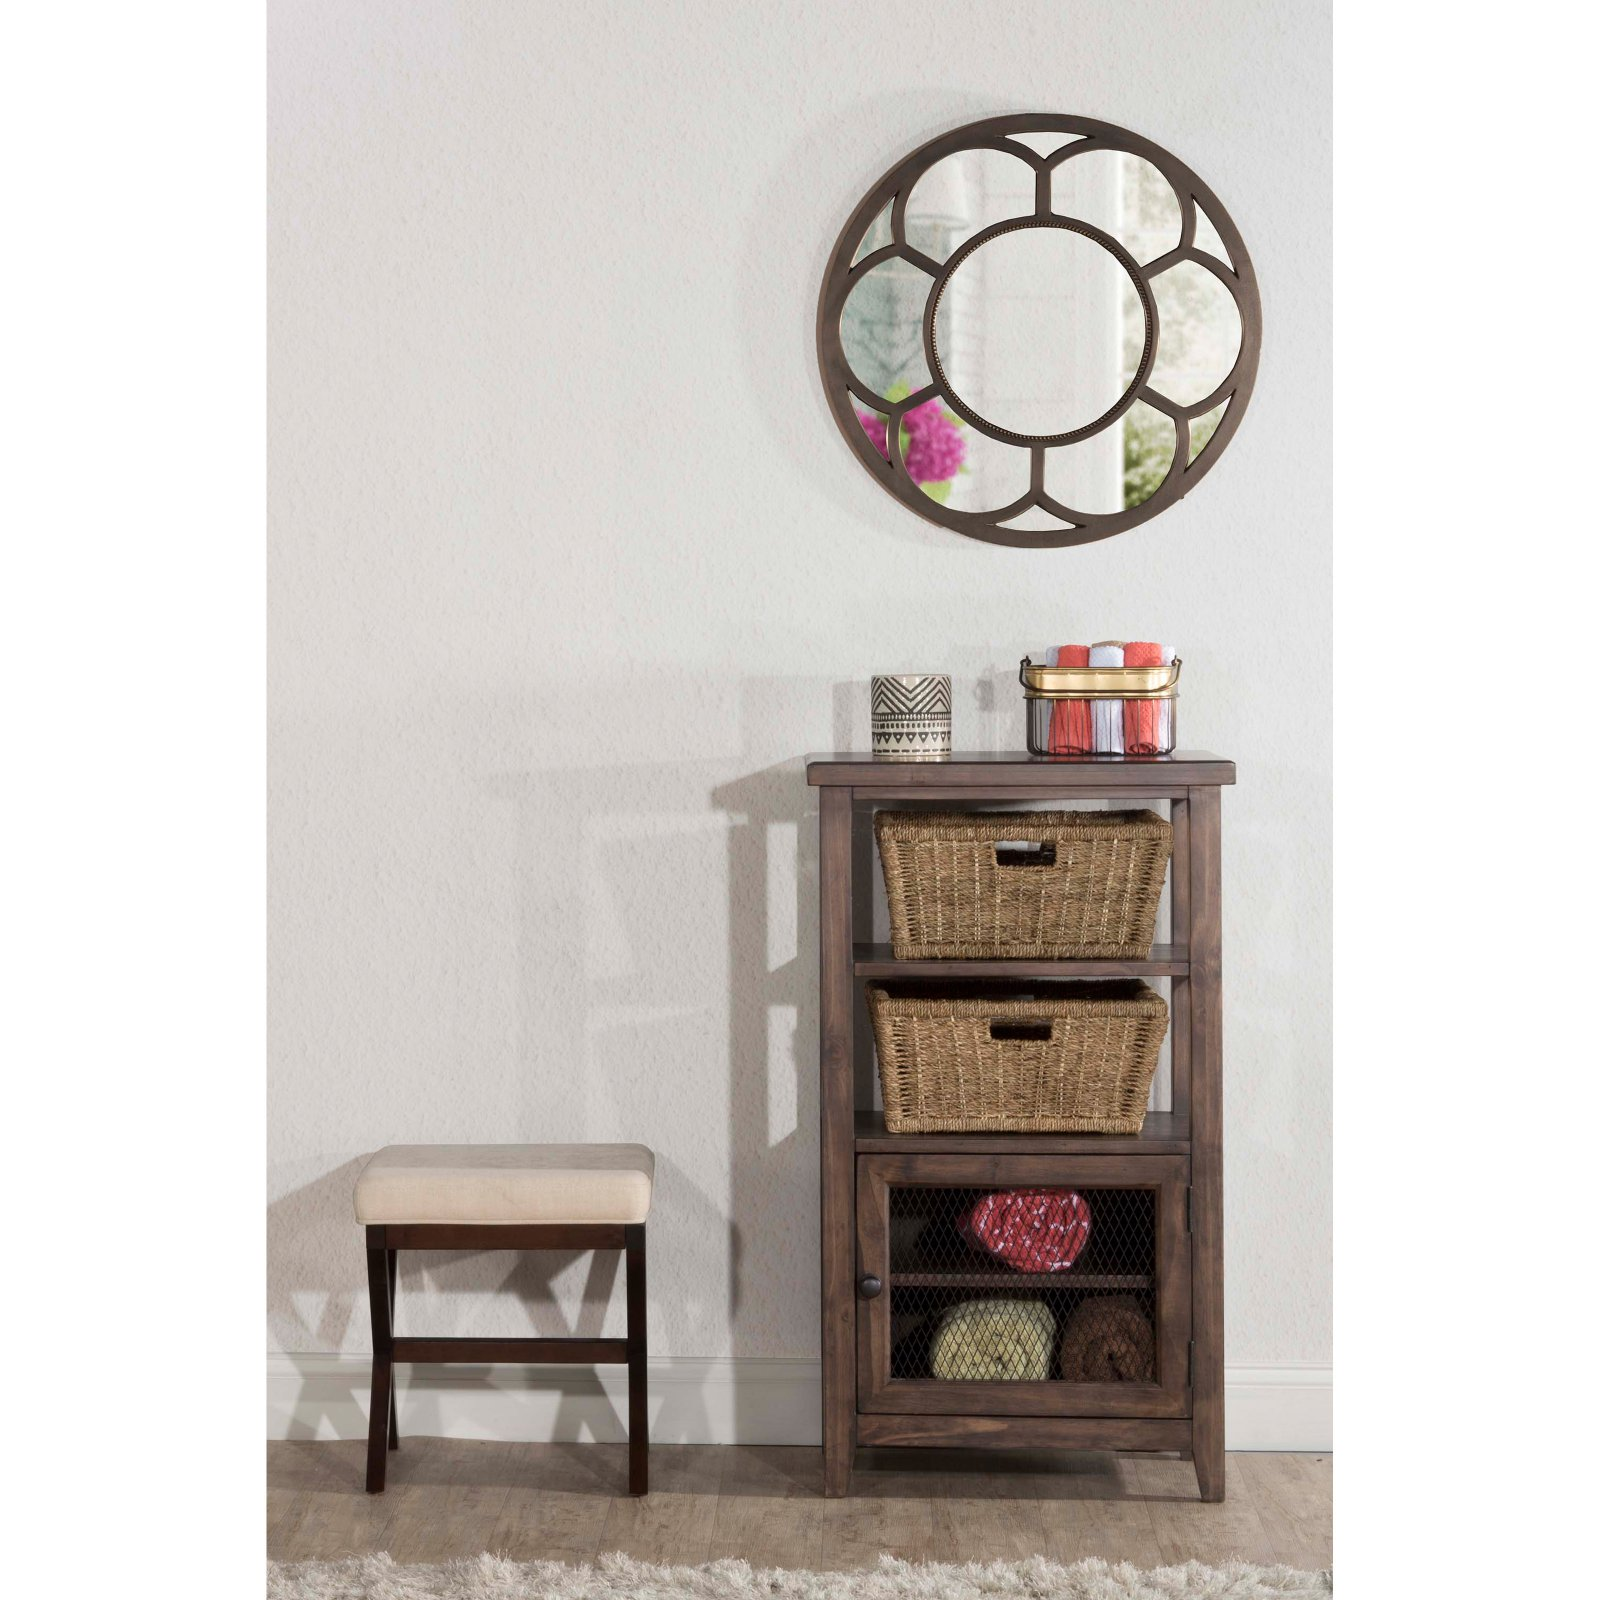 Hillsdale Furniture Tuscan Retreat Basket Stand with Wire Door and Two (2) Baskets, Mocha